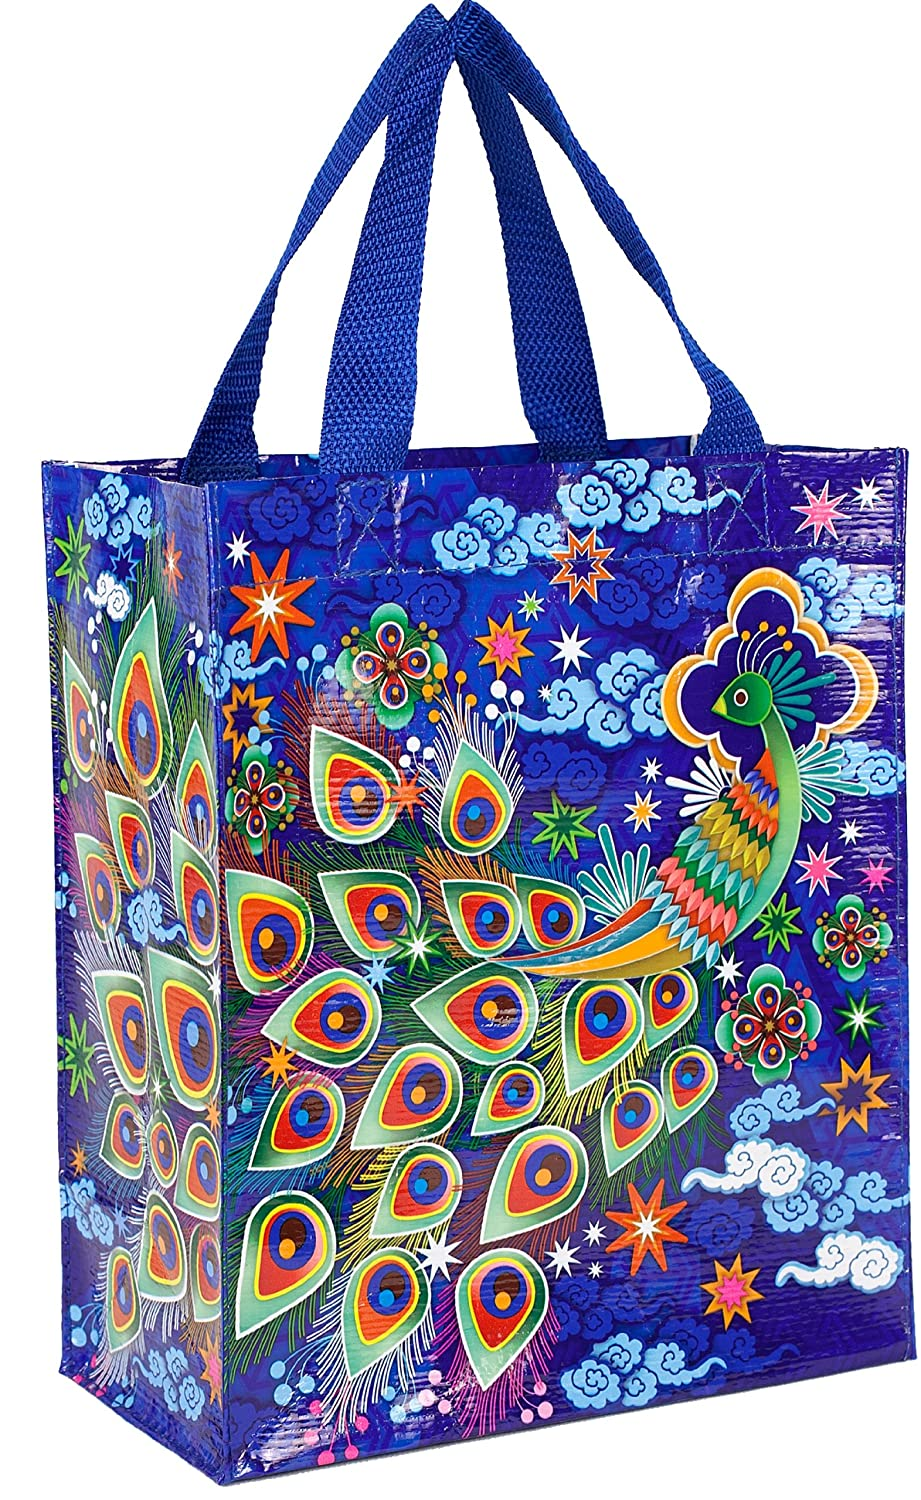 Amazon.com: Blue Q Peacock Handy Tote: Reusable Lunch Bags: Kitchen & Dining